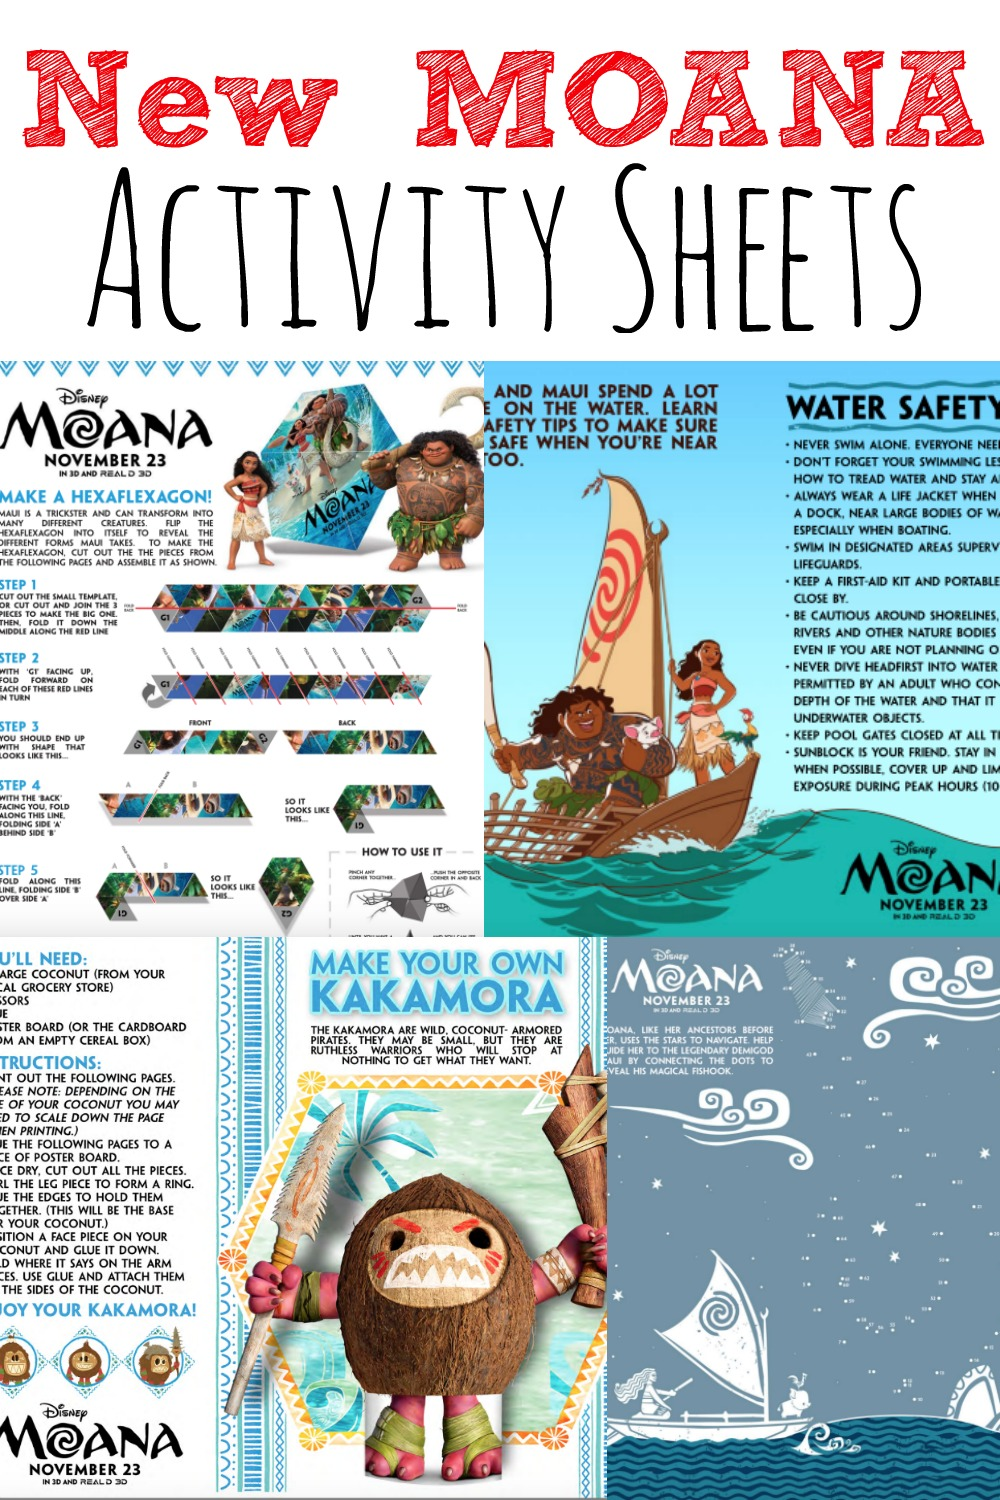 New Free MOANA Activity Sheets and Coloring Pages For Kids